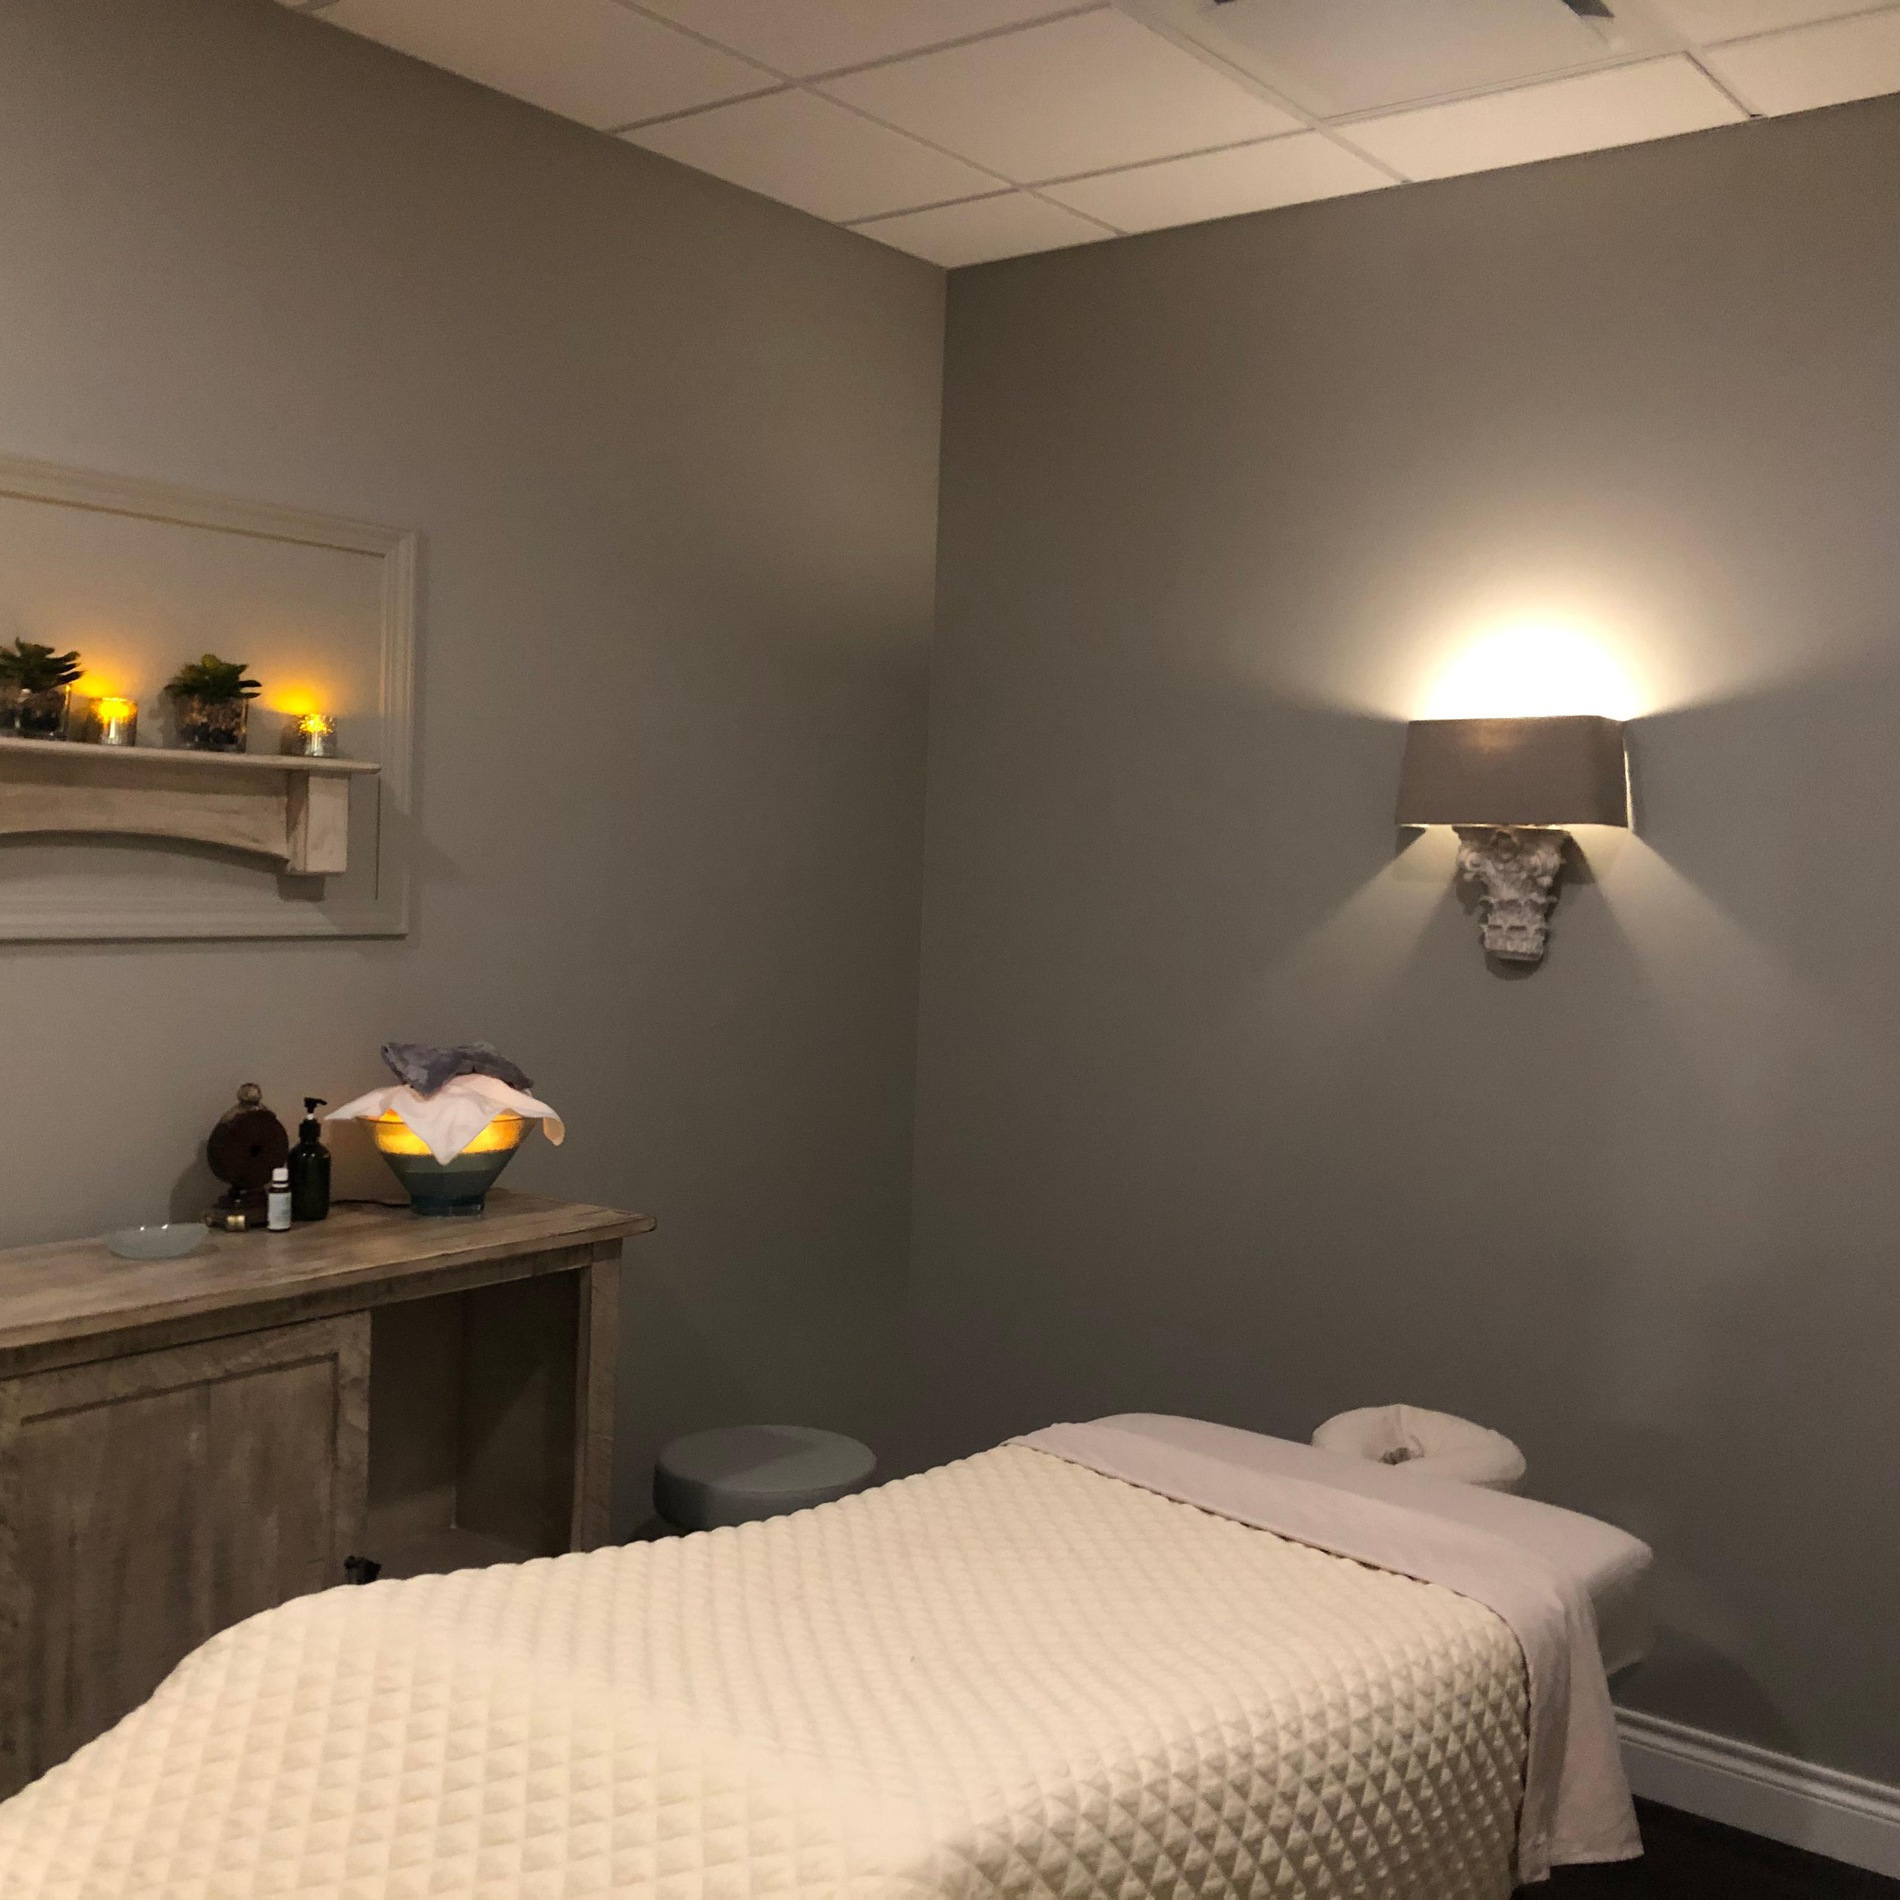 Enjoy one of our many massage services.